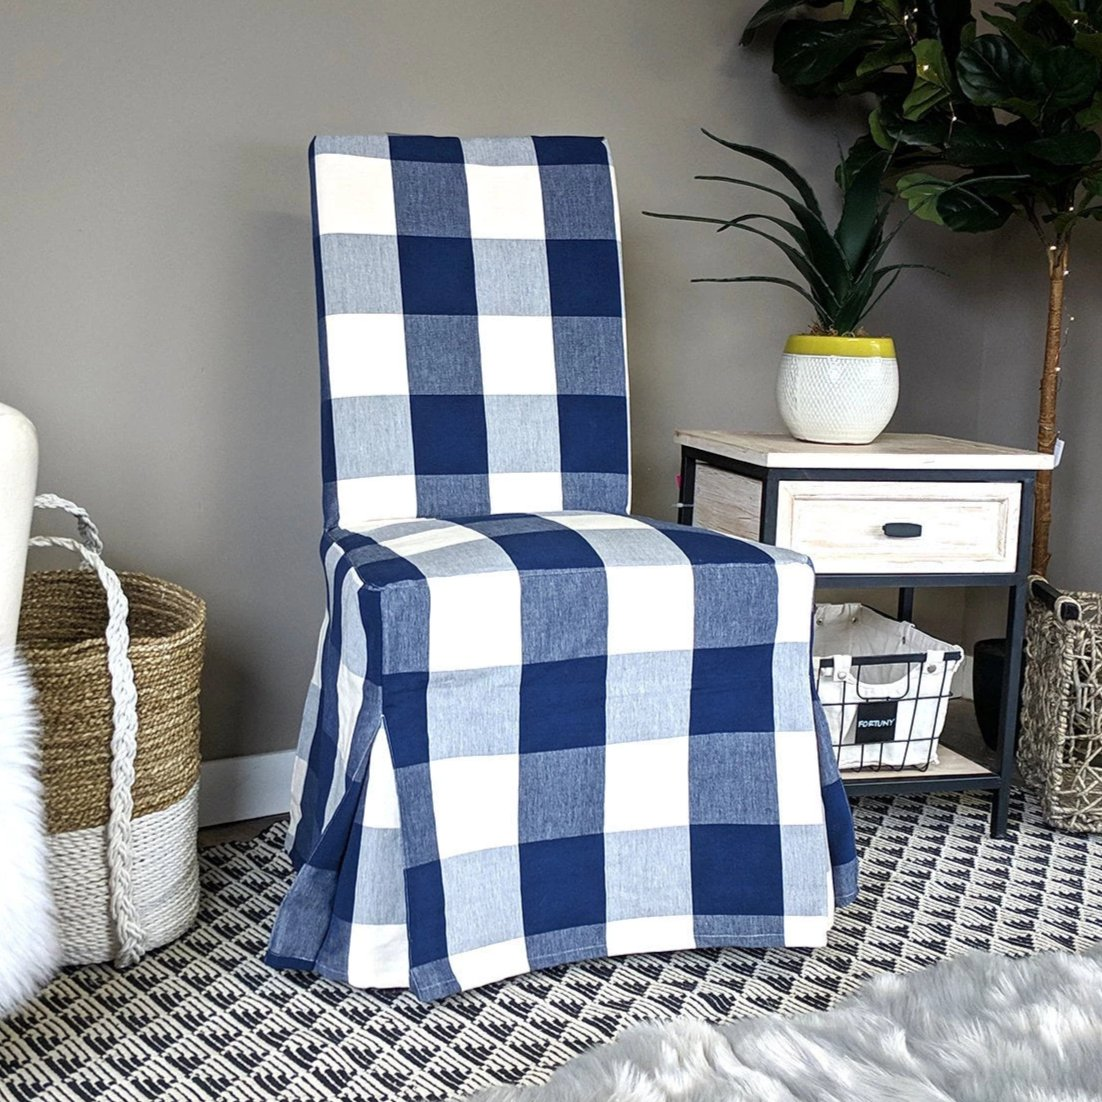 Ikea Henriksdal Dining Chair Cover Buffalo Check Navy Blue Affordable Designer Custom Handmade Trendy Fashionable Locally Made High Quality